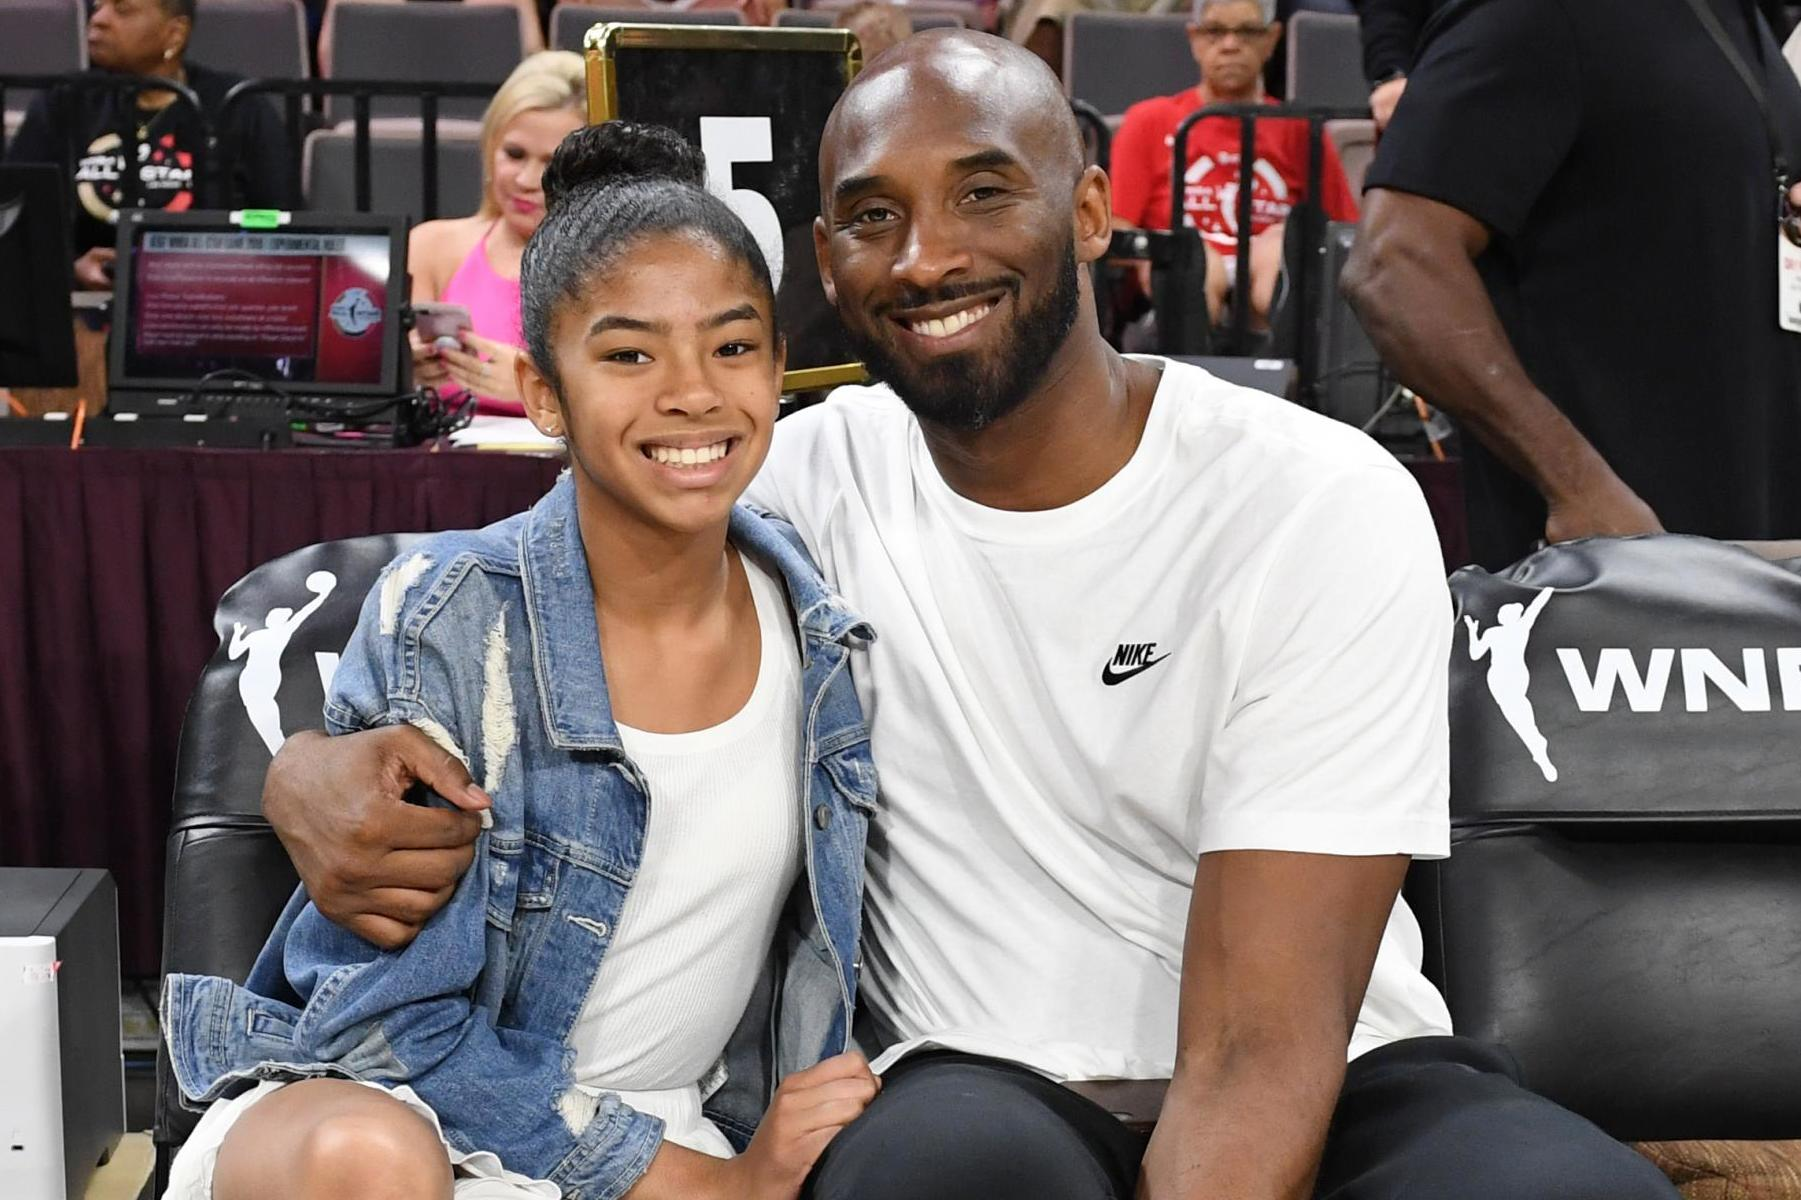 Kobe Bryant - latest news, breaking stories and comment - The ...